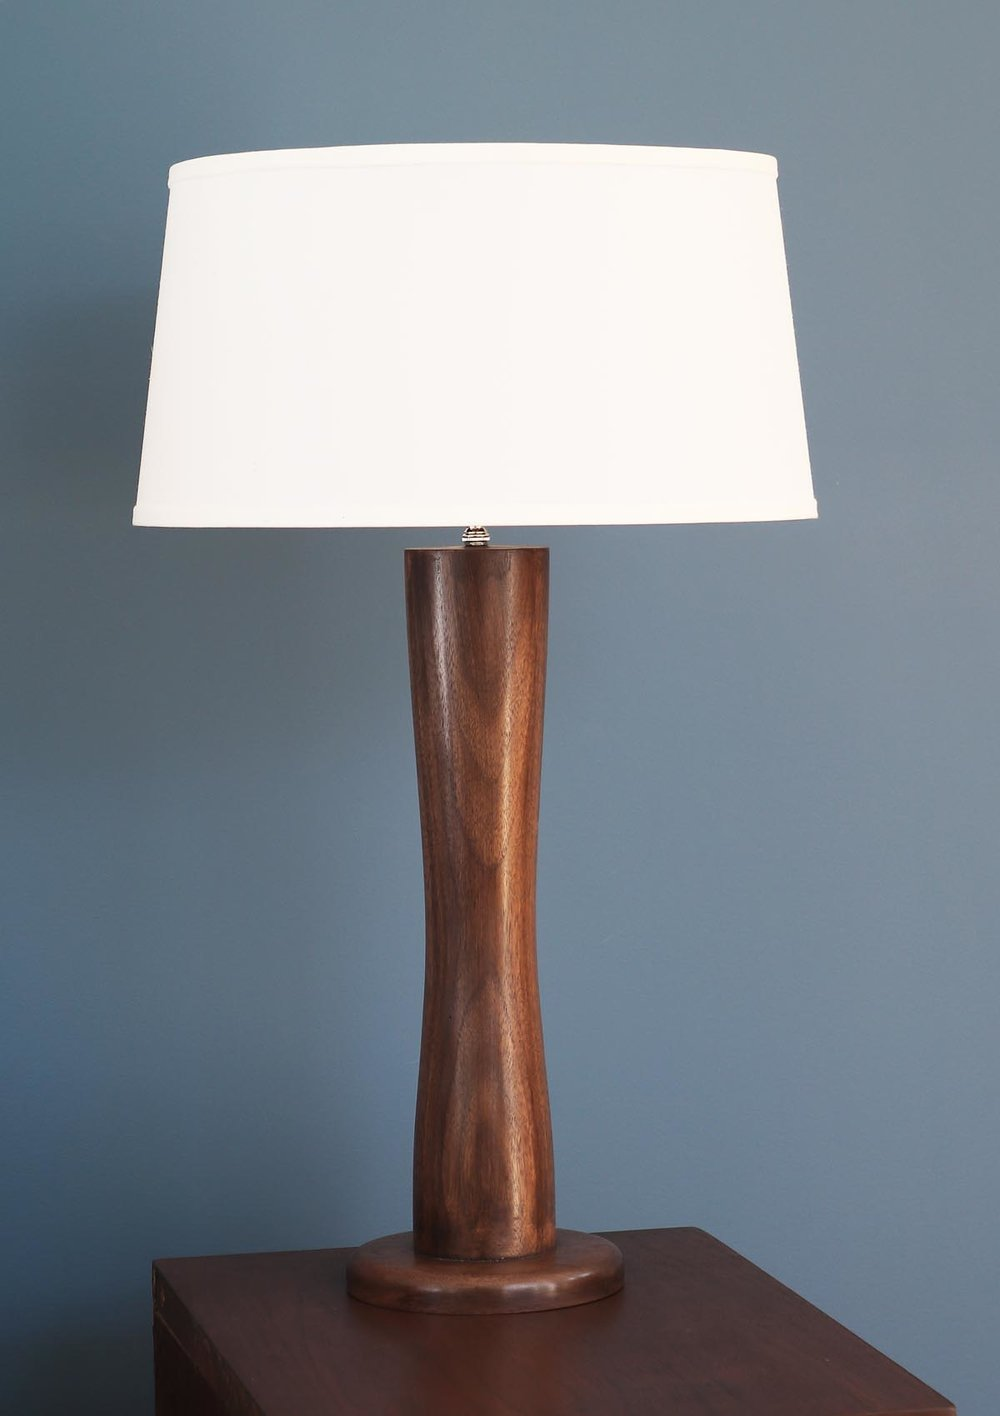 BUY - Walnut Large Table Lamp: $350 + Shipping